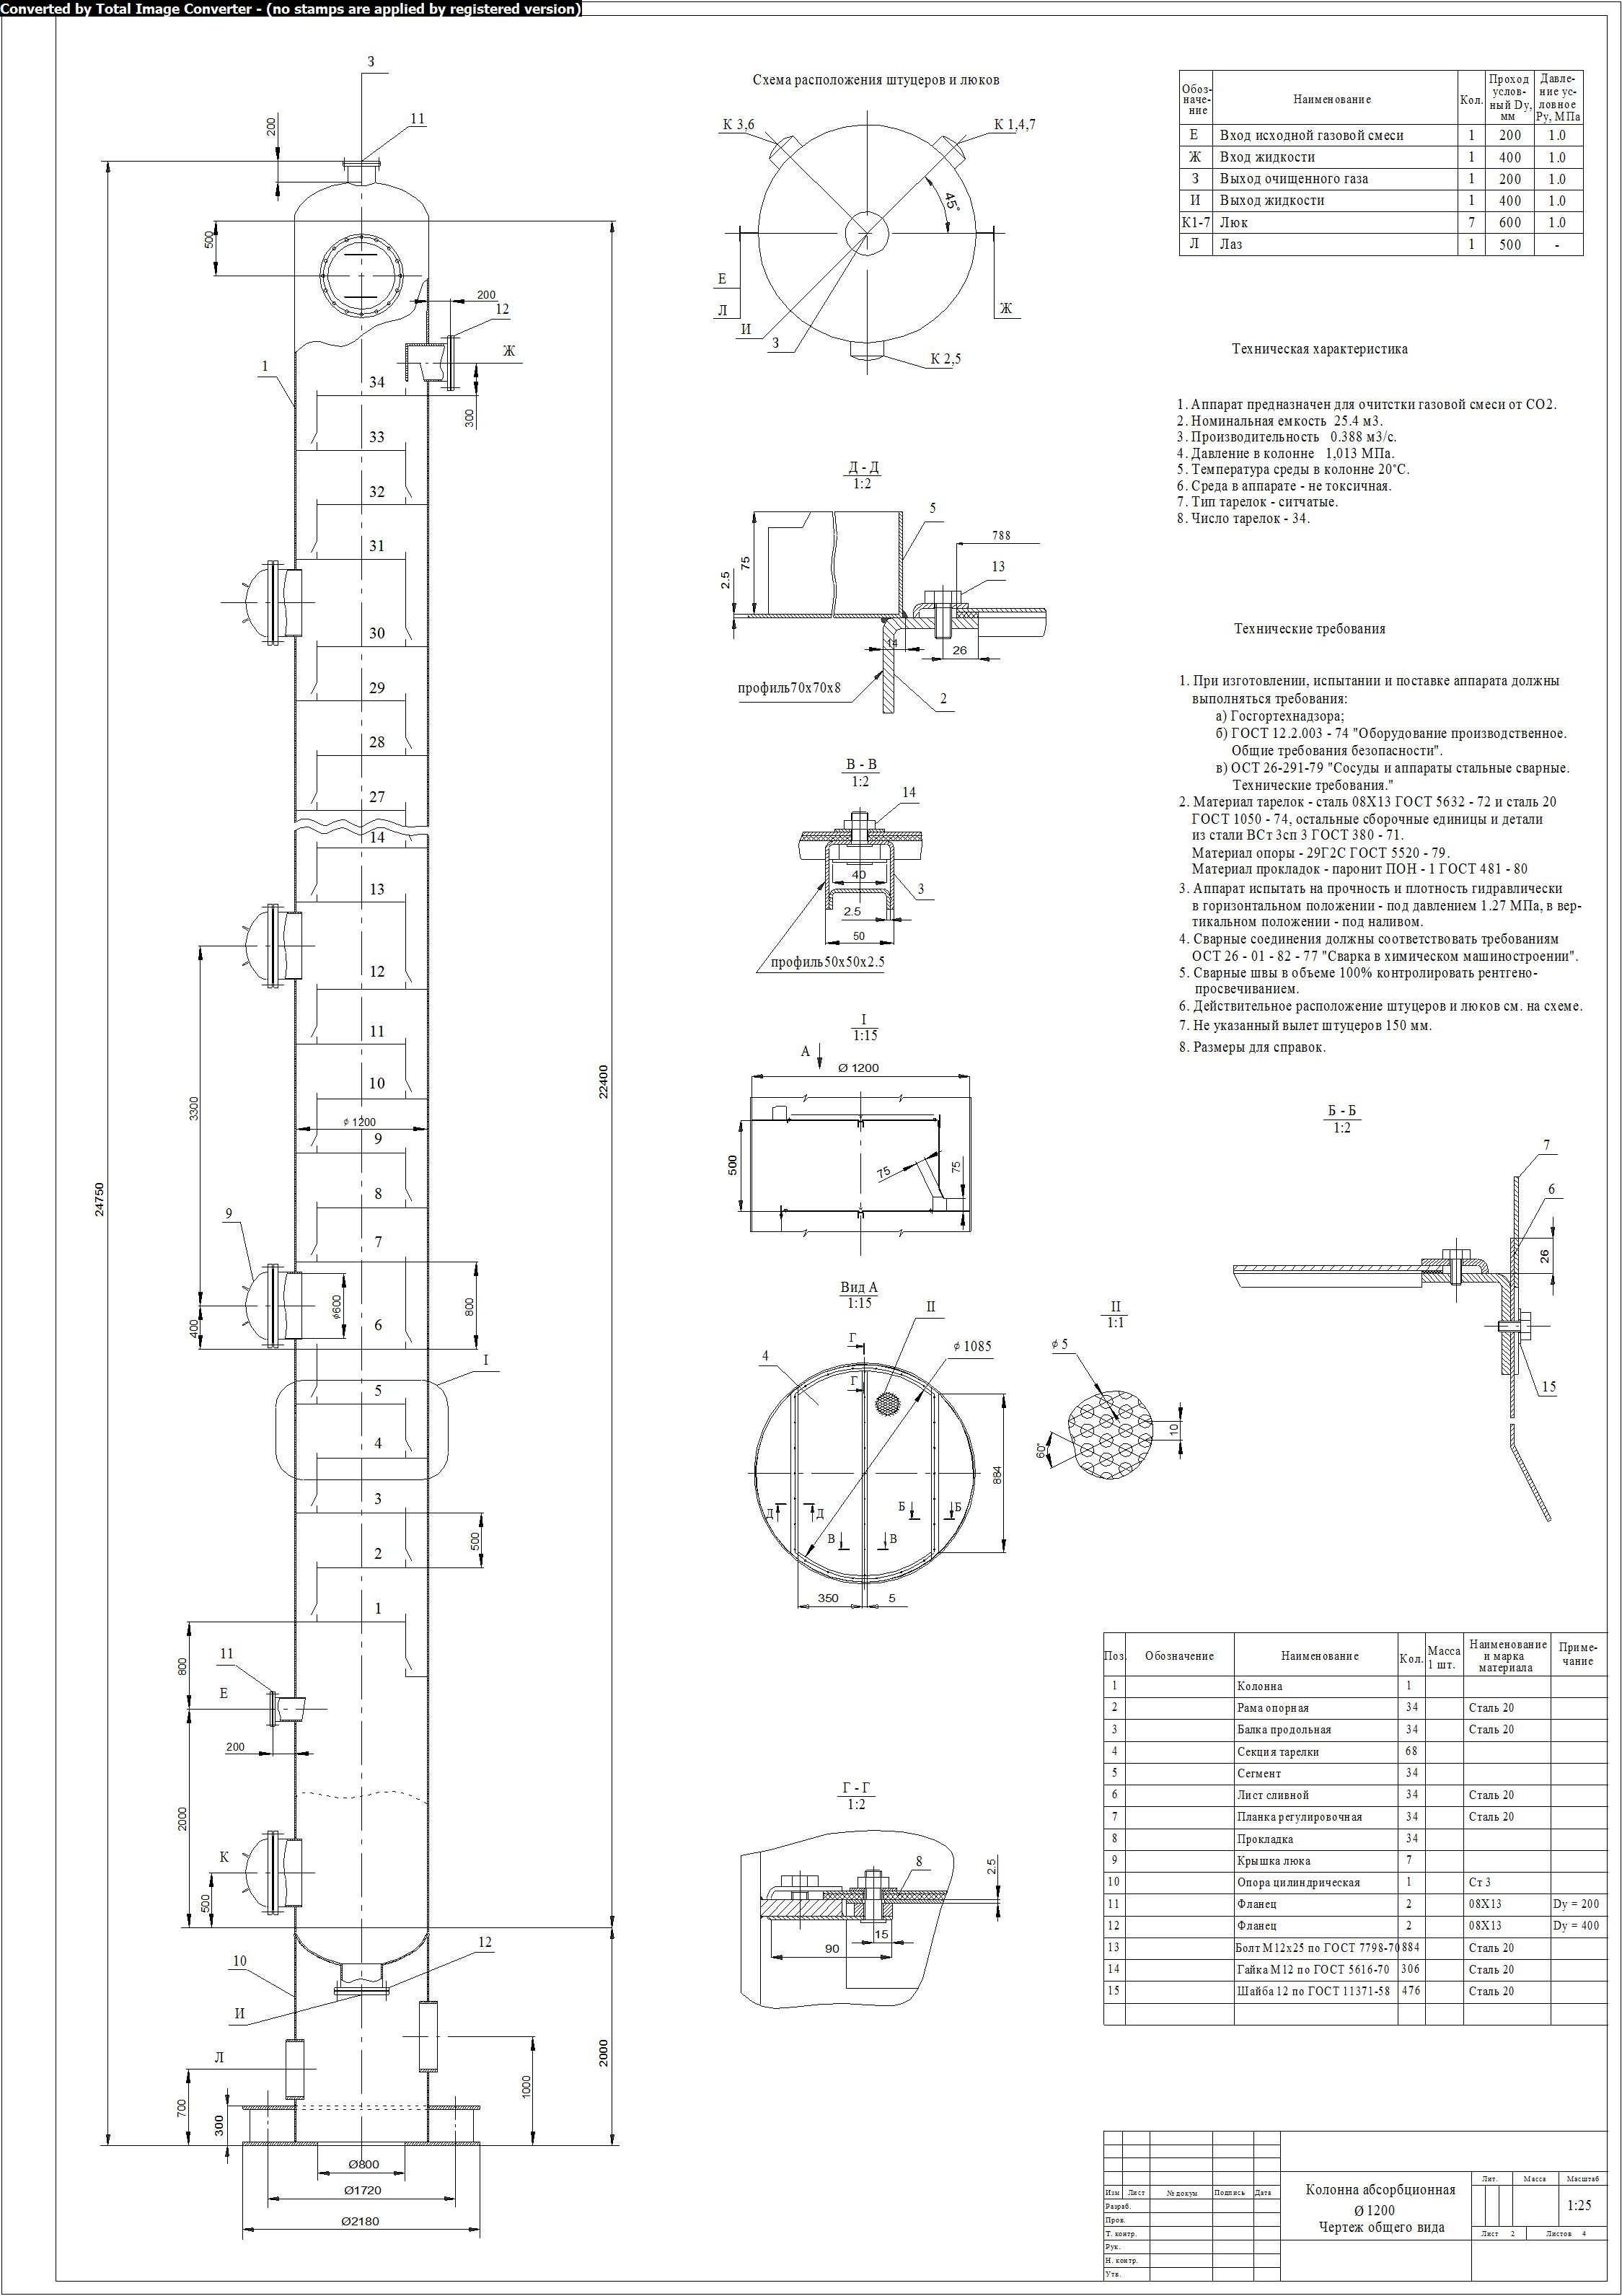 Drawing D1200 distillation column